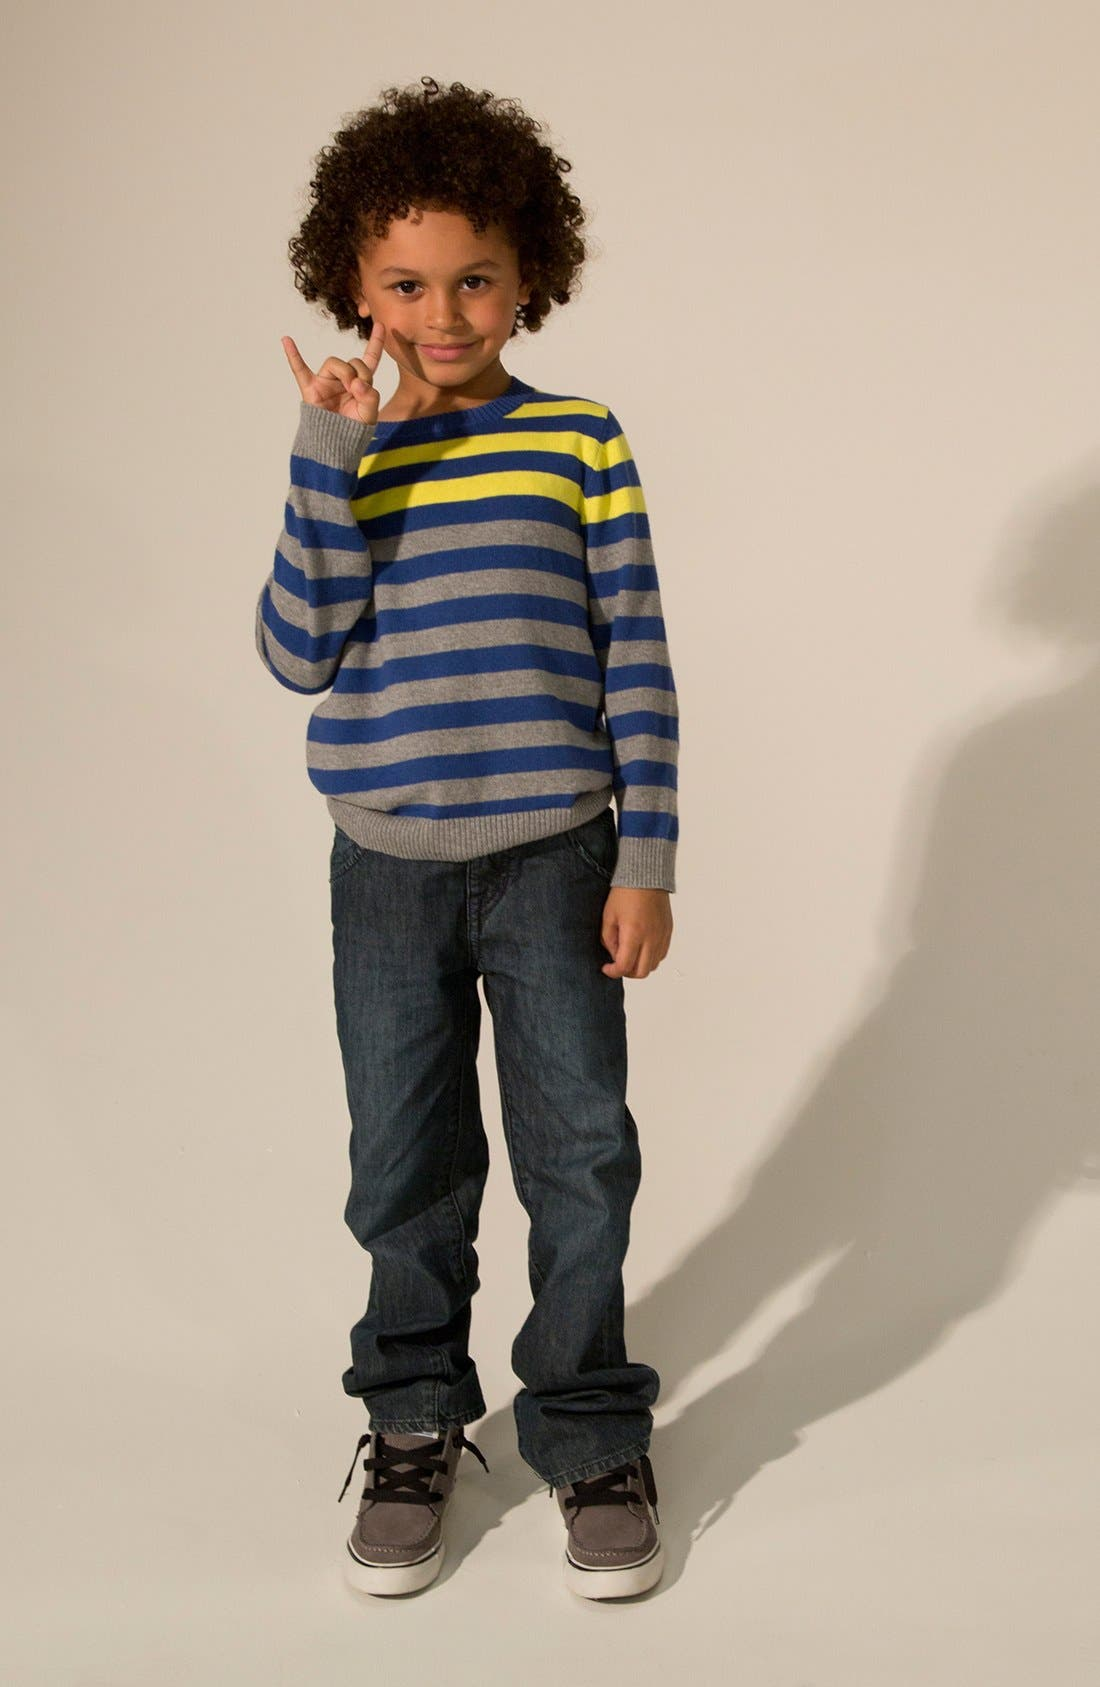 Alternate Image 1 Selected - Tucker + Tate Sweater & Jeans (Big Boys)